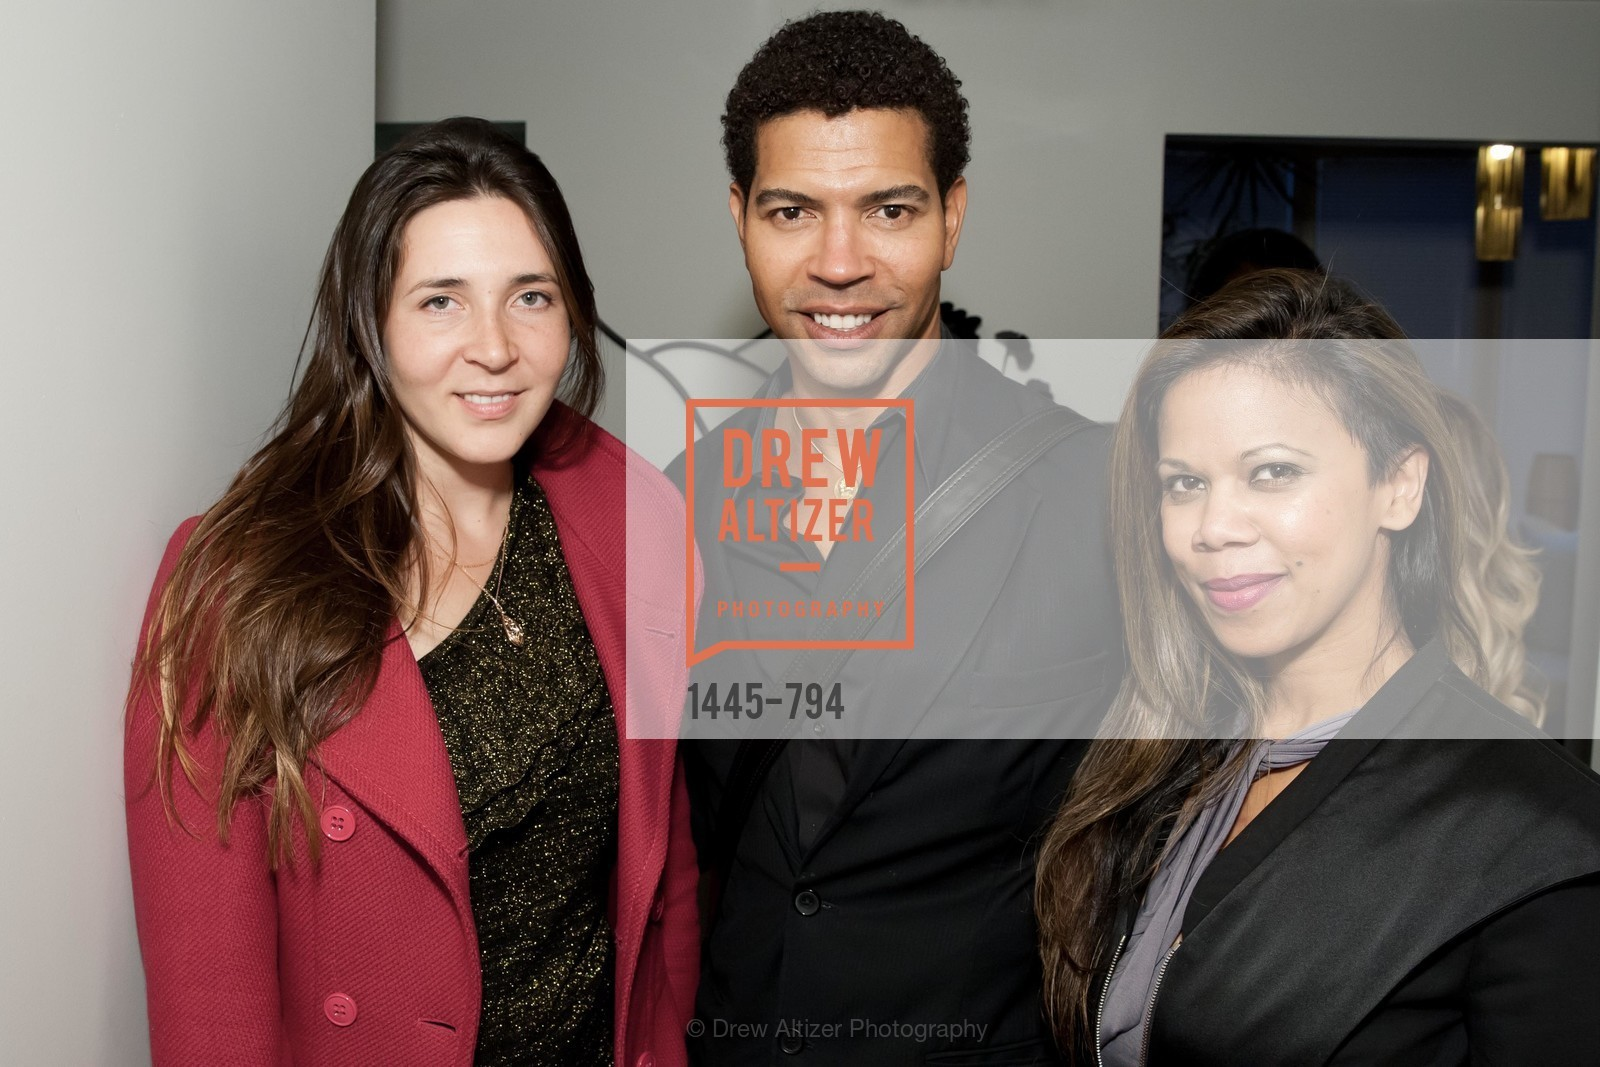 Valerie Demicheva, Gian-Paul Williams, Nishika DeRosario, EPI CENTER MedSpa Anniversary and Launch of REPLETE - Evening Celebration, US, April 21st, 2015,Drew Altizer, Drew Altizer Photography, full-service agency, private events, San Francisco photographer, photographer california